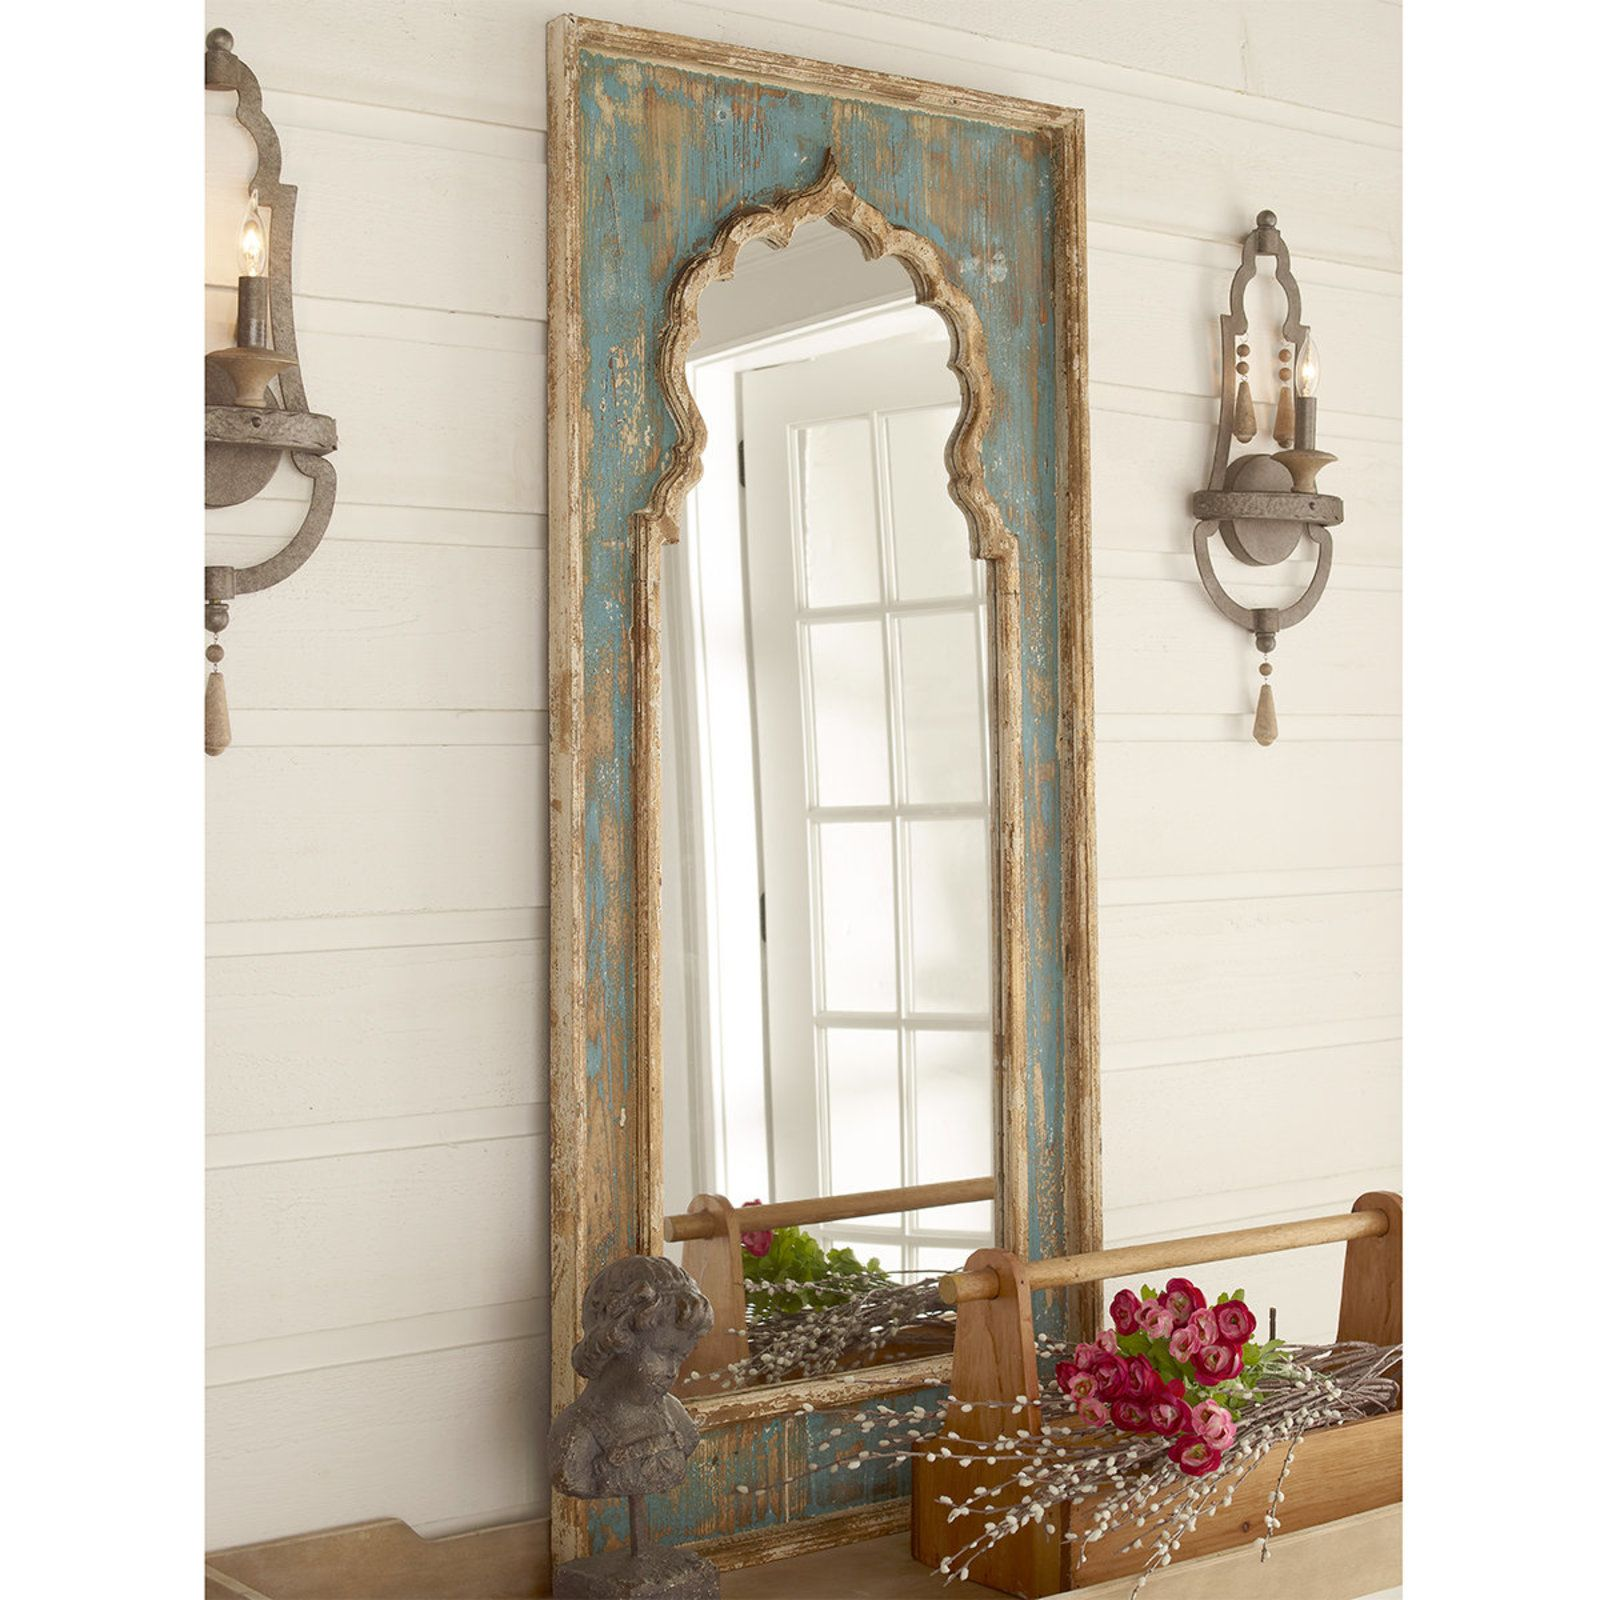 Distressed Painted Wood Mirror Distressing Painted Wood Mirror Decor Wood Mirror